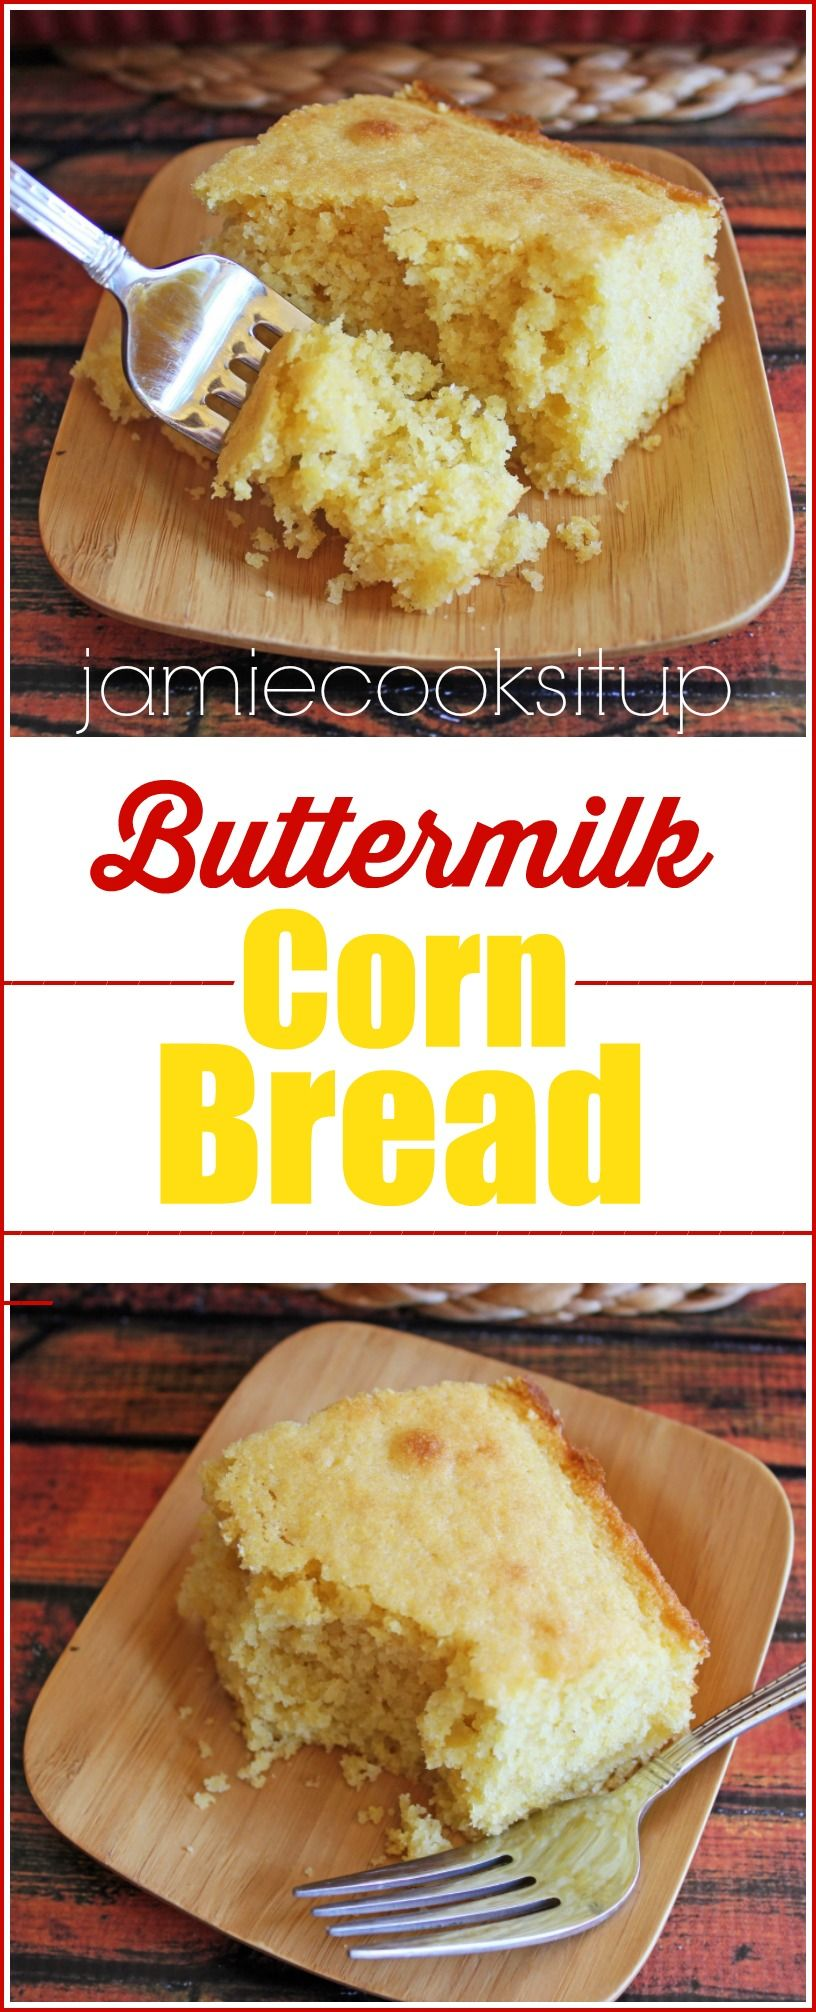 Buttermilk Corn Bread with Jamie Cooks It Up!